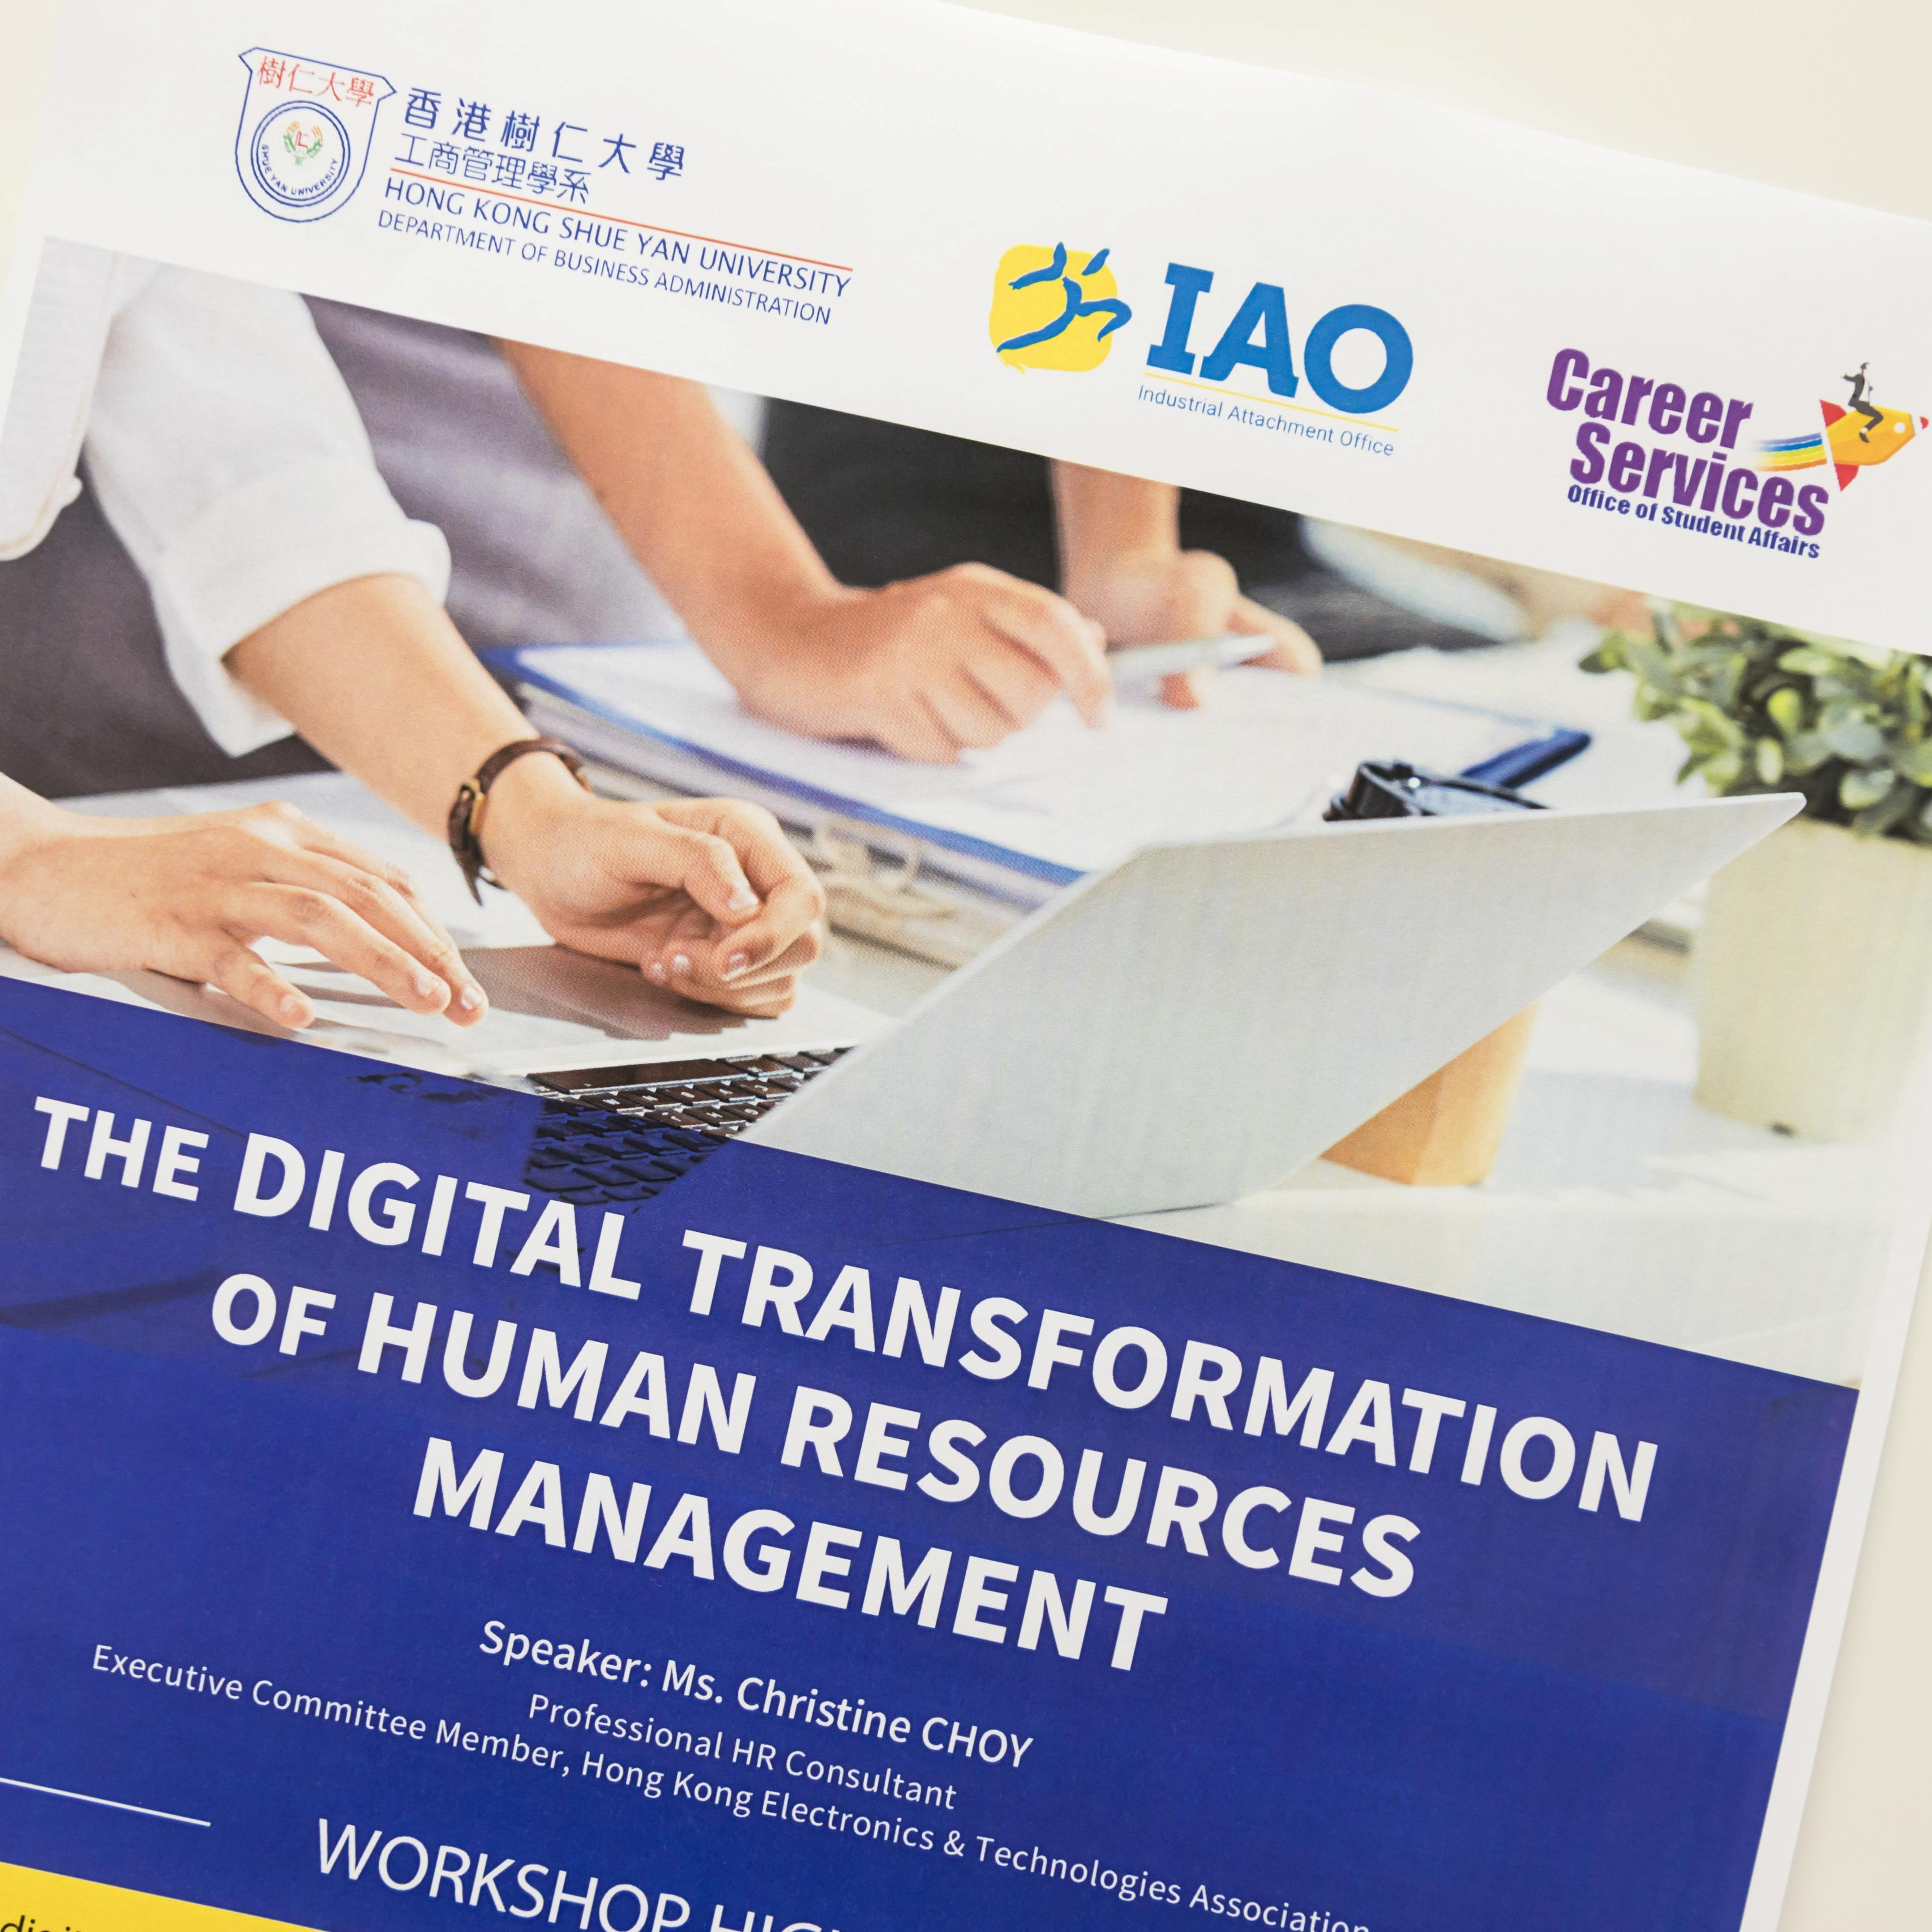 The Digital Transformation of Human Resources Management1